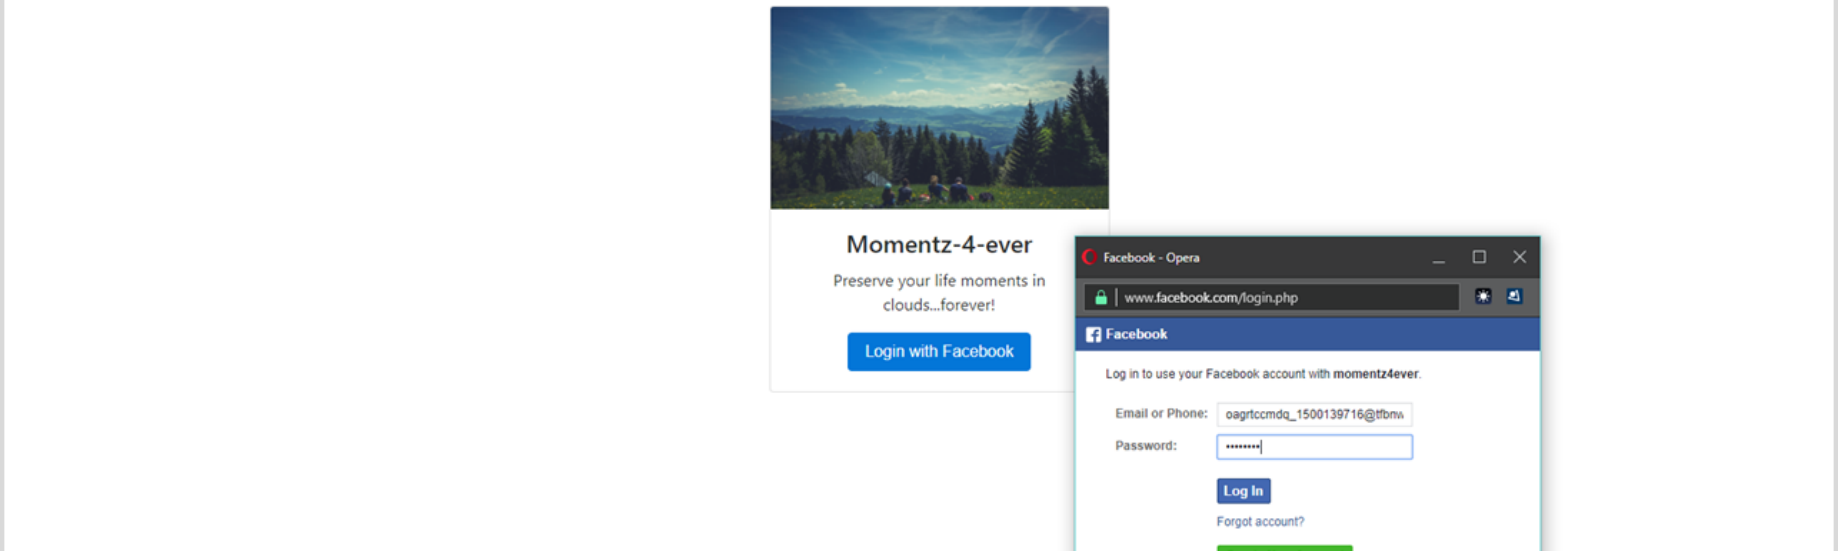 Adding Facebook oAuth to our App — Part 2 - Developing an